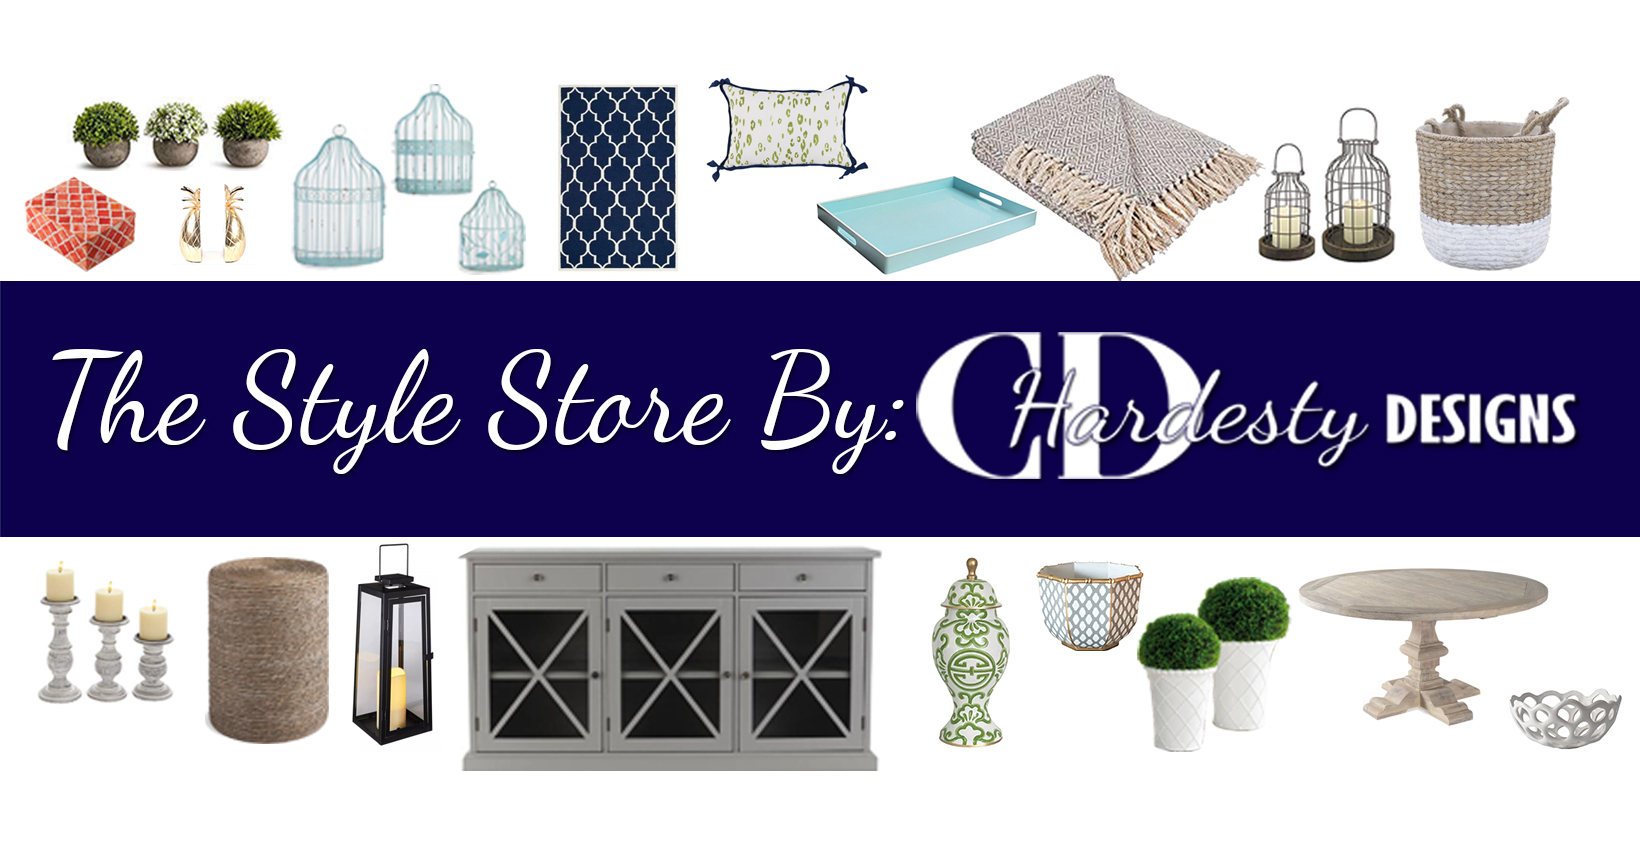 Where you can get designer selected  décor and furniture pieces that you can shop the look on, directly from www.cdhardestydesigns.com